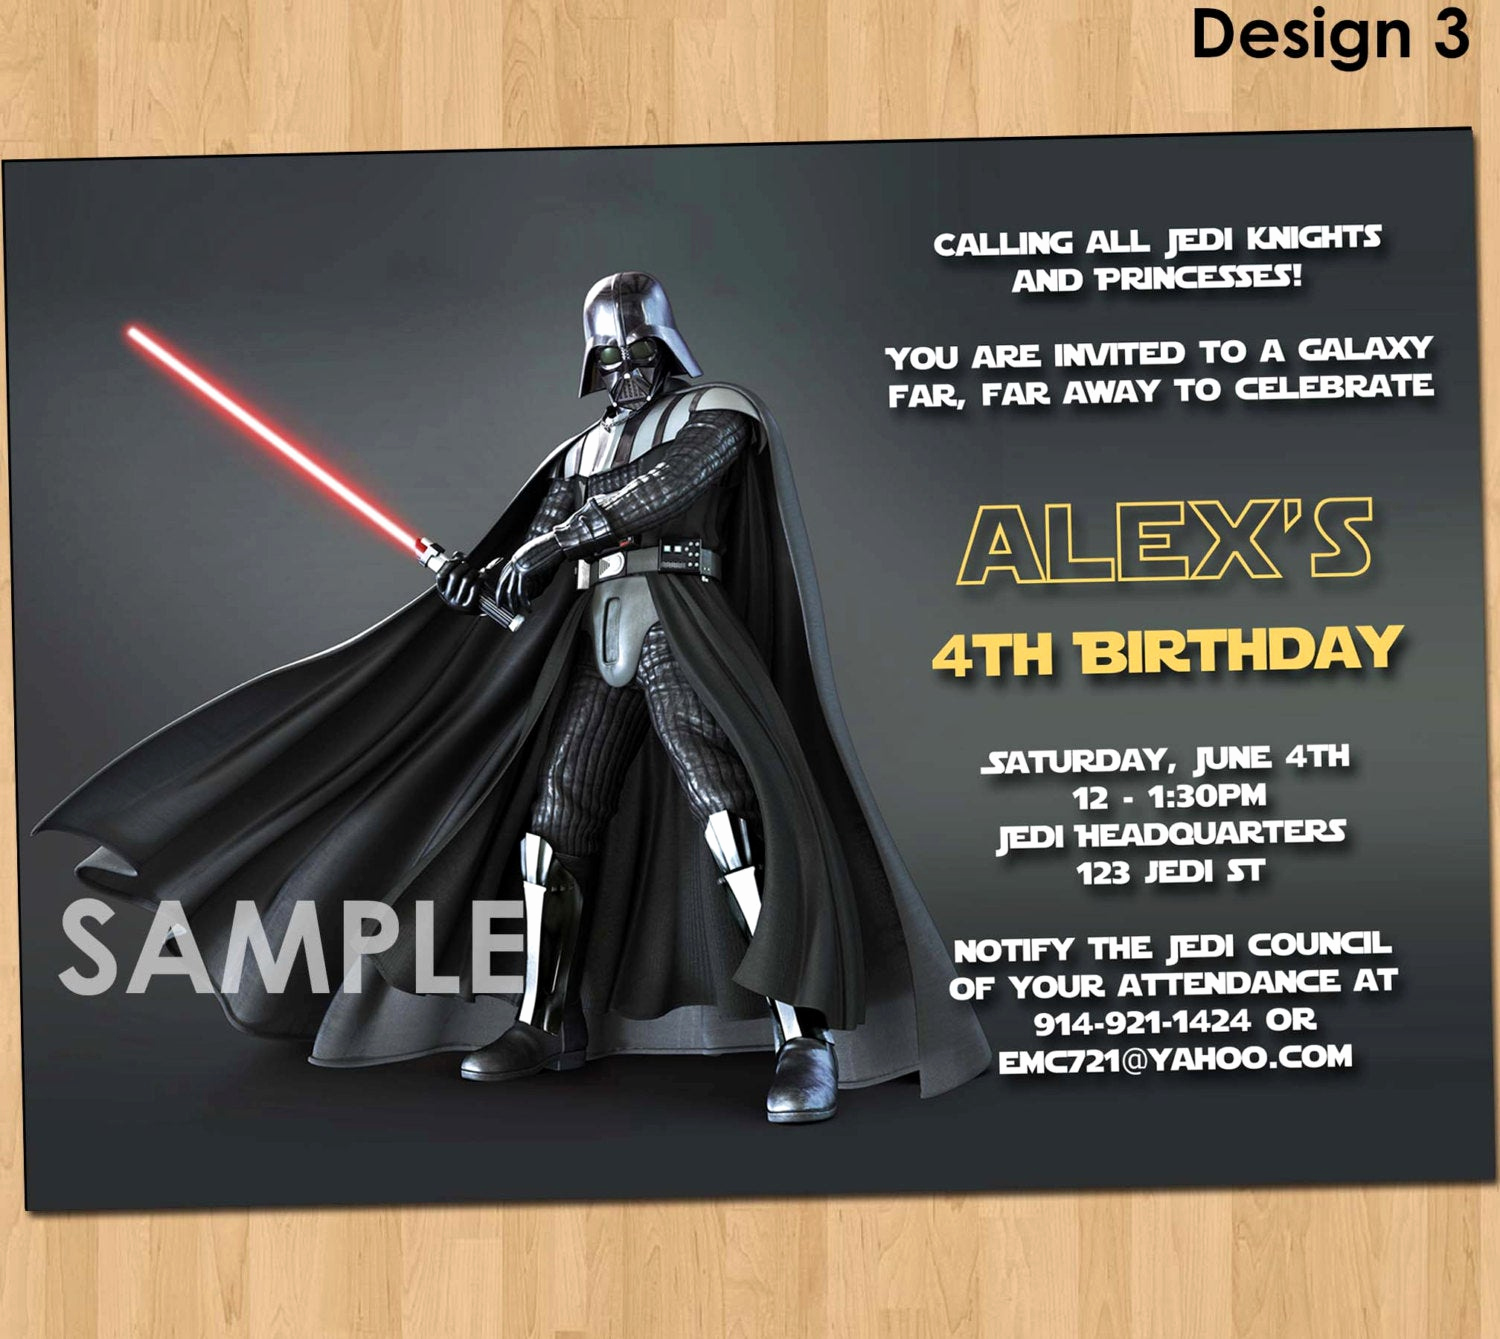 Star Wars Birthday Invitation Beautiful Star Wars Invitation Star Wars Party Invitation Star Wars